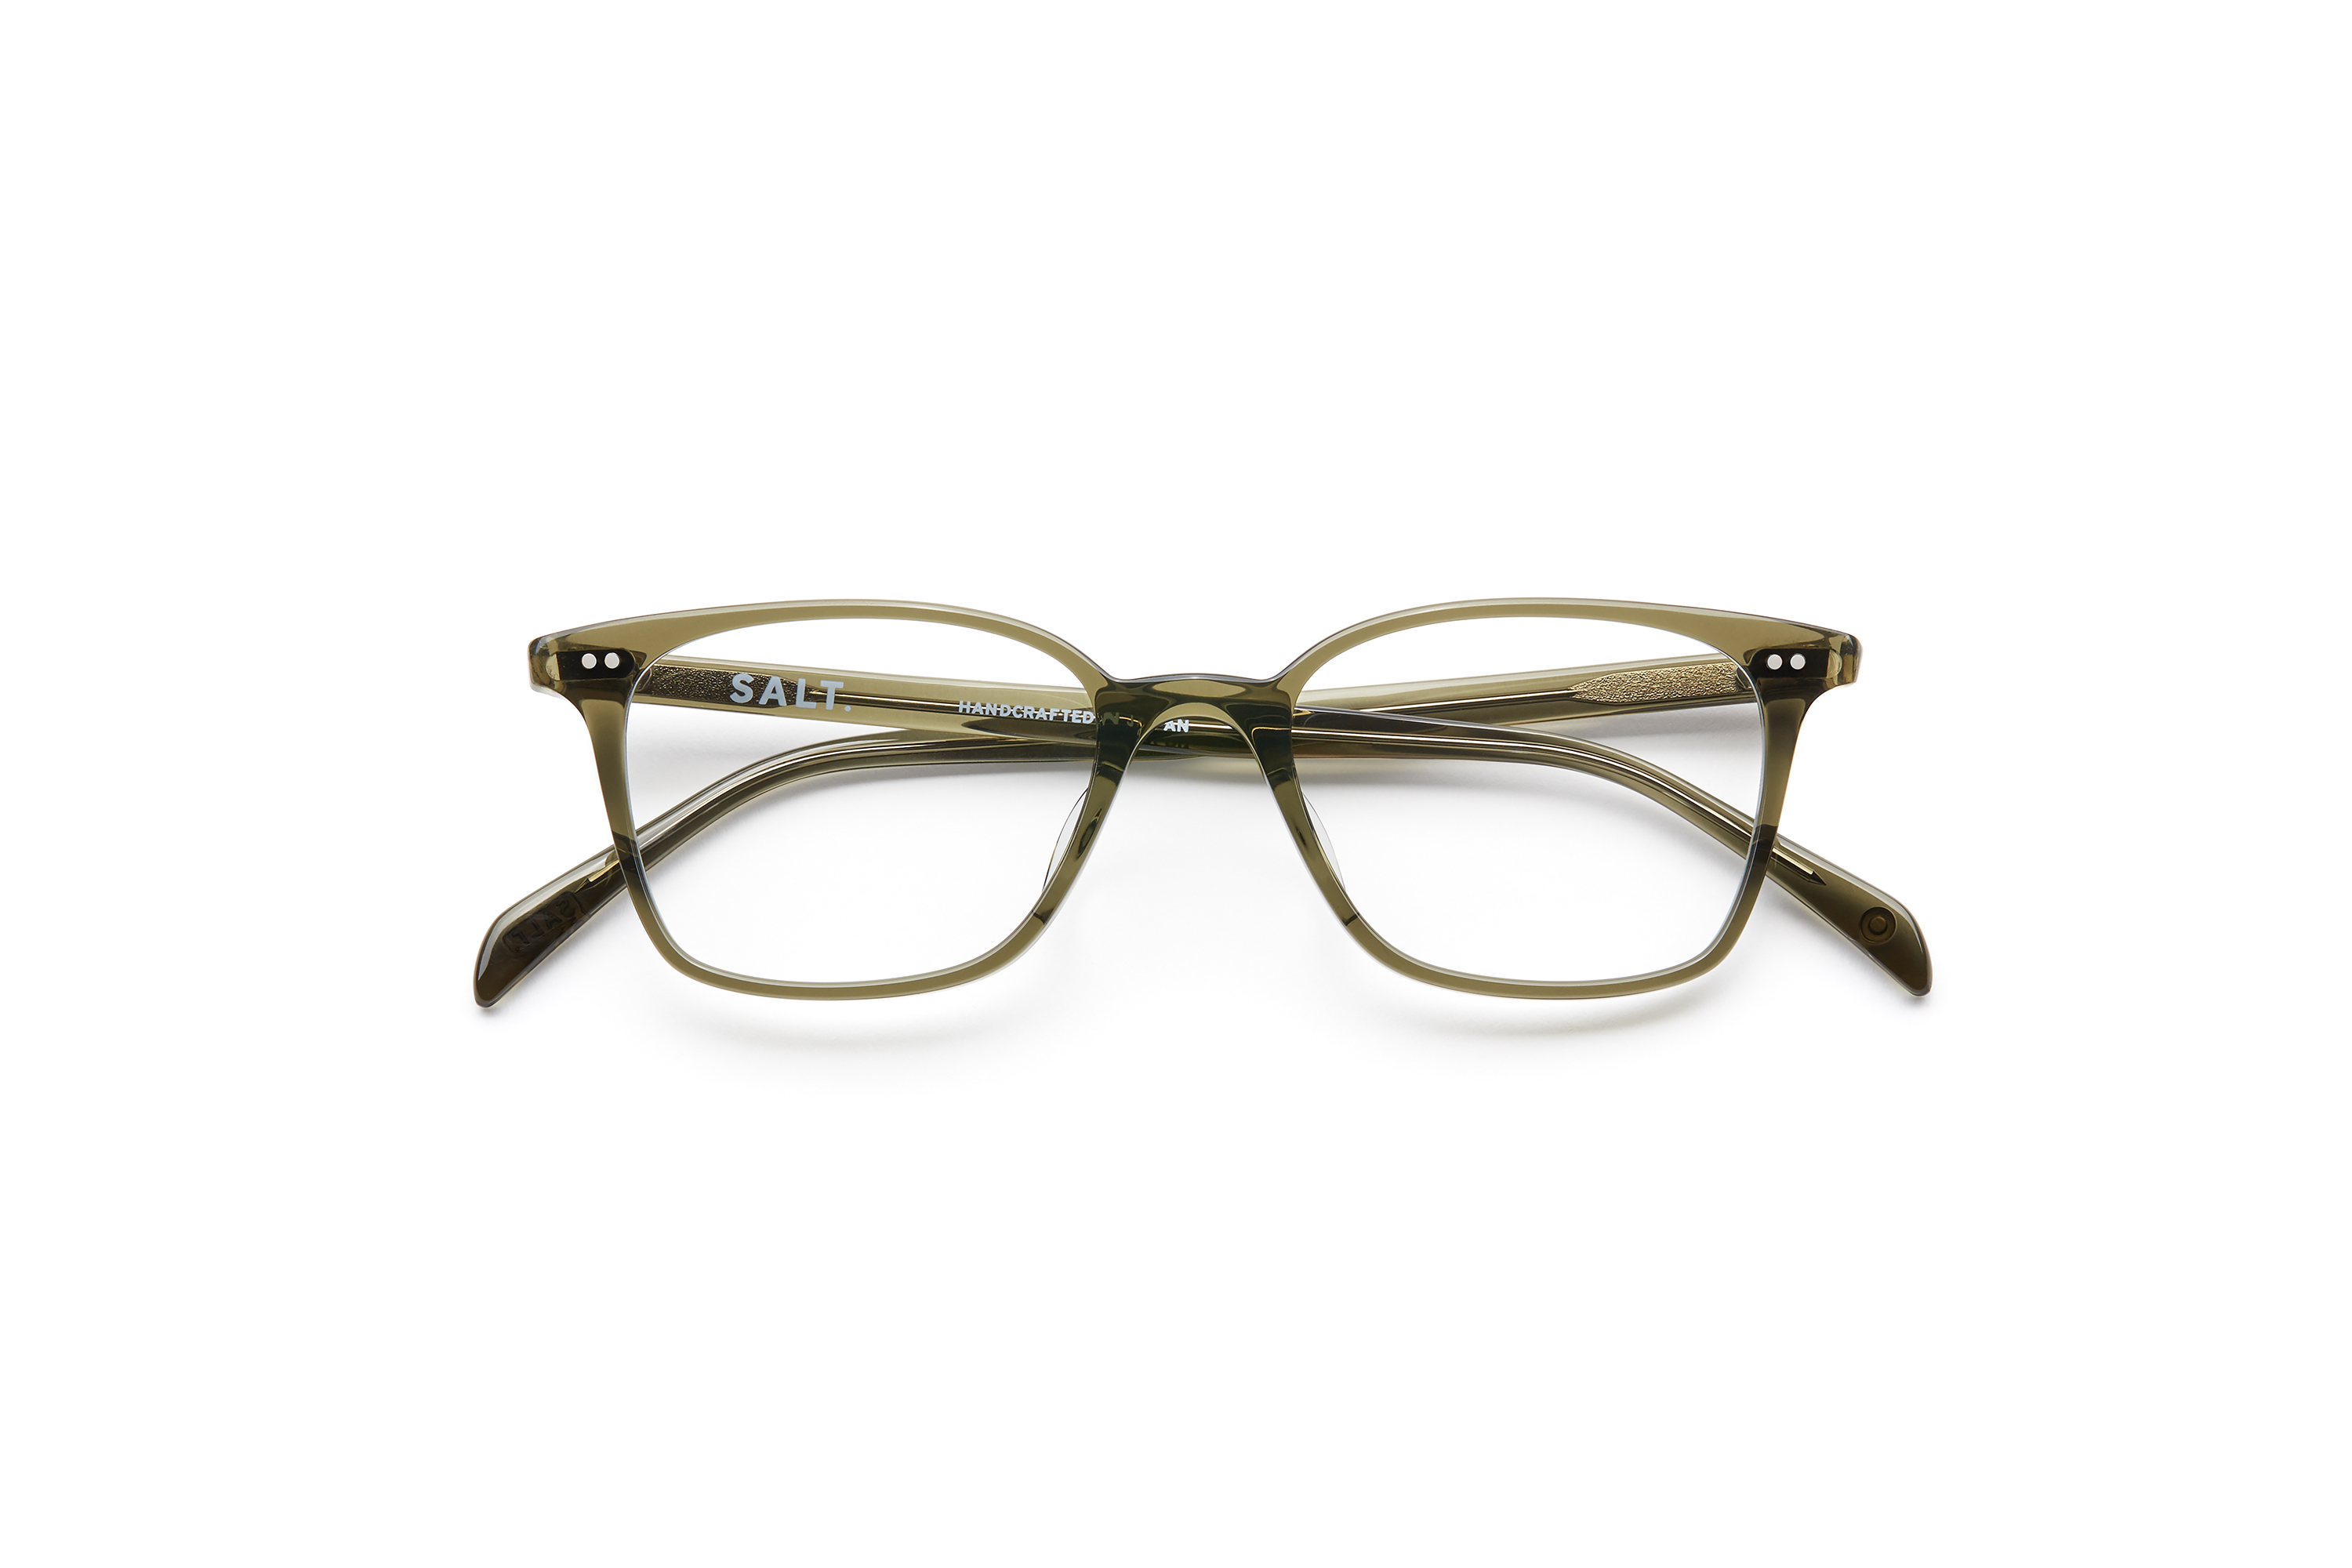 SALT. | frame: LANCE in Dried Herb